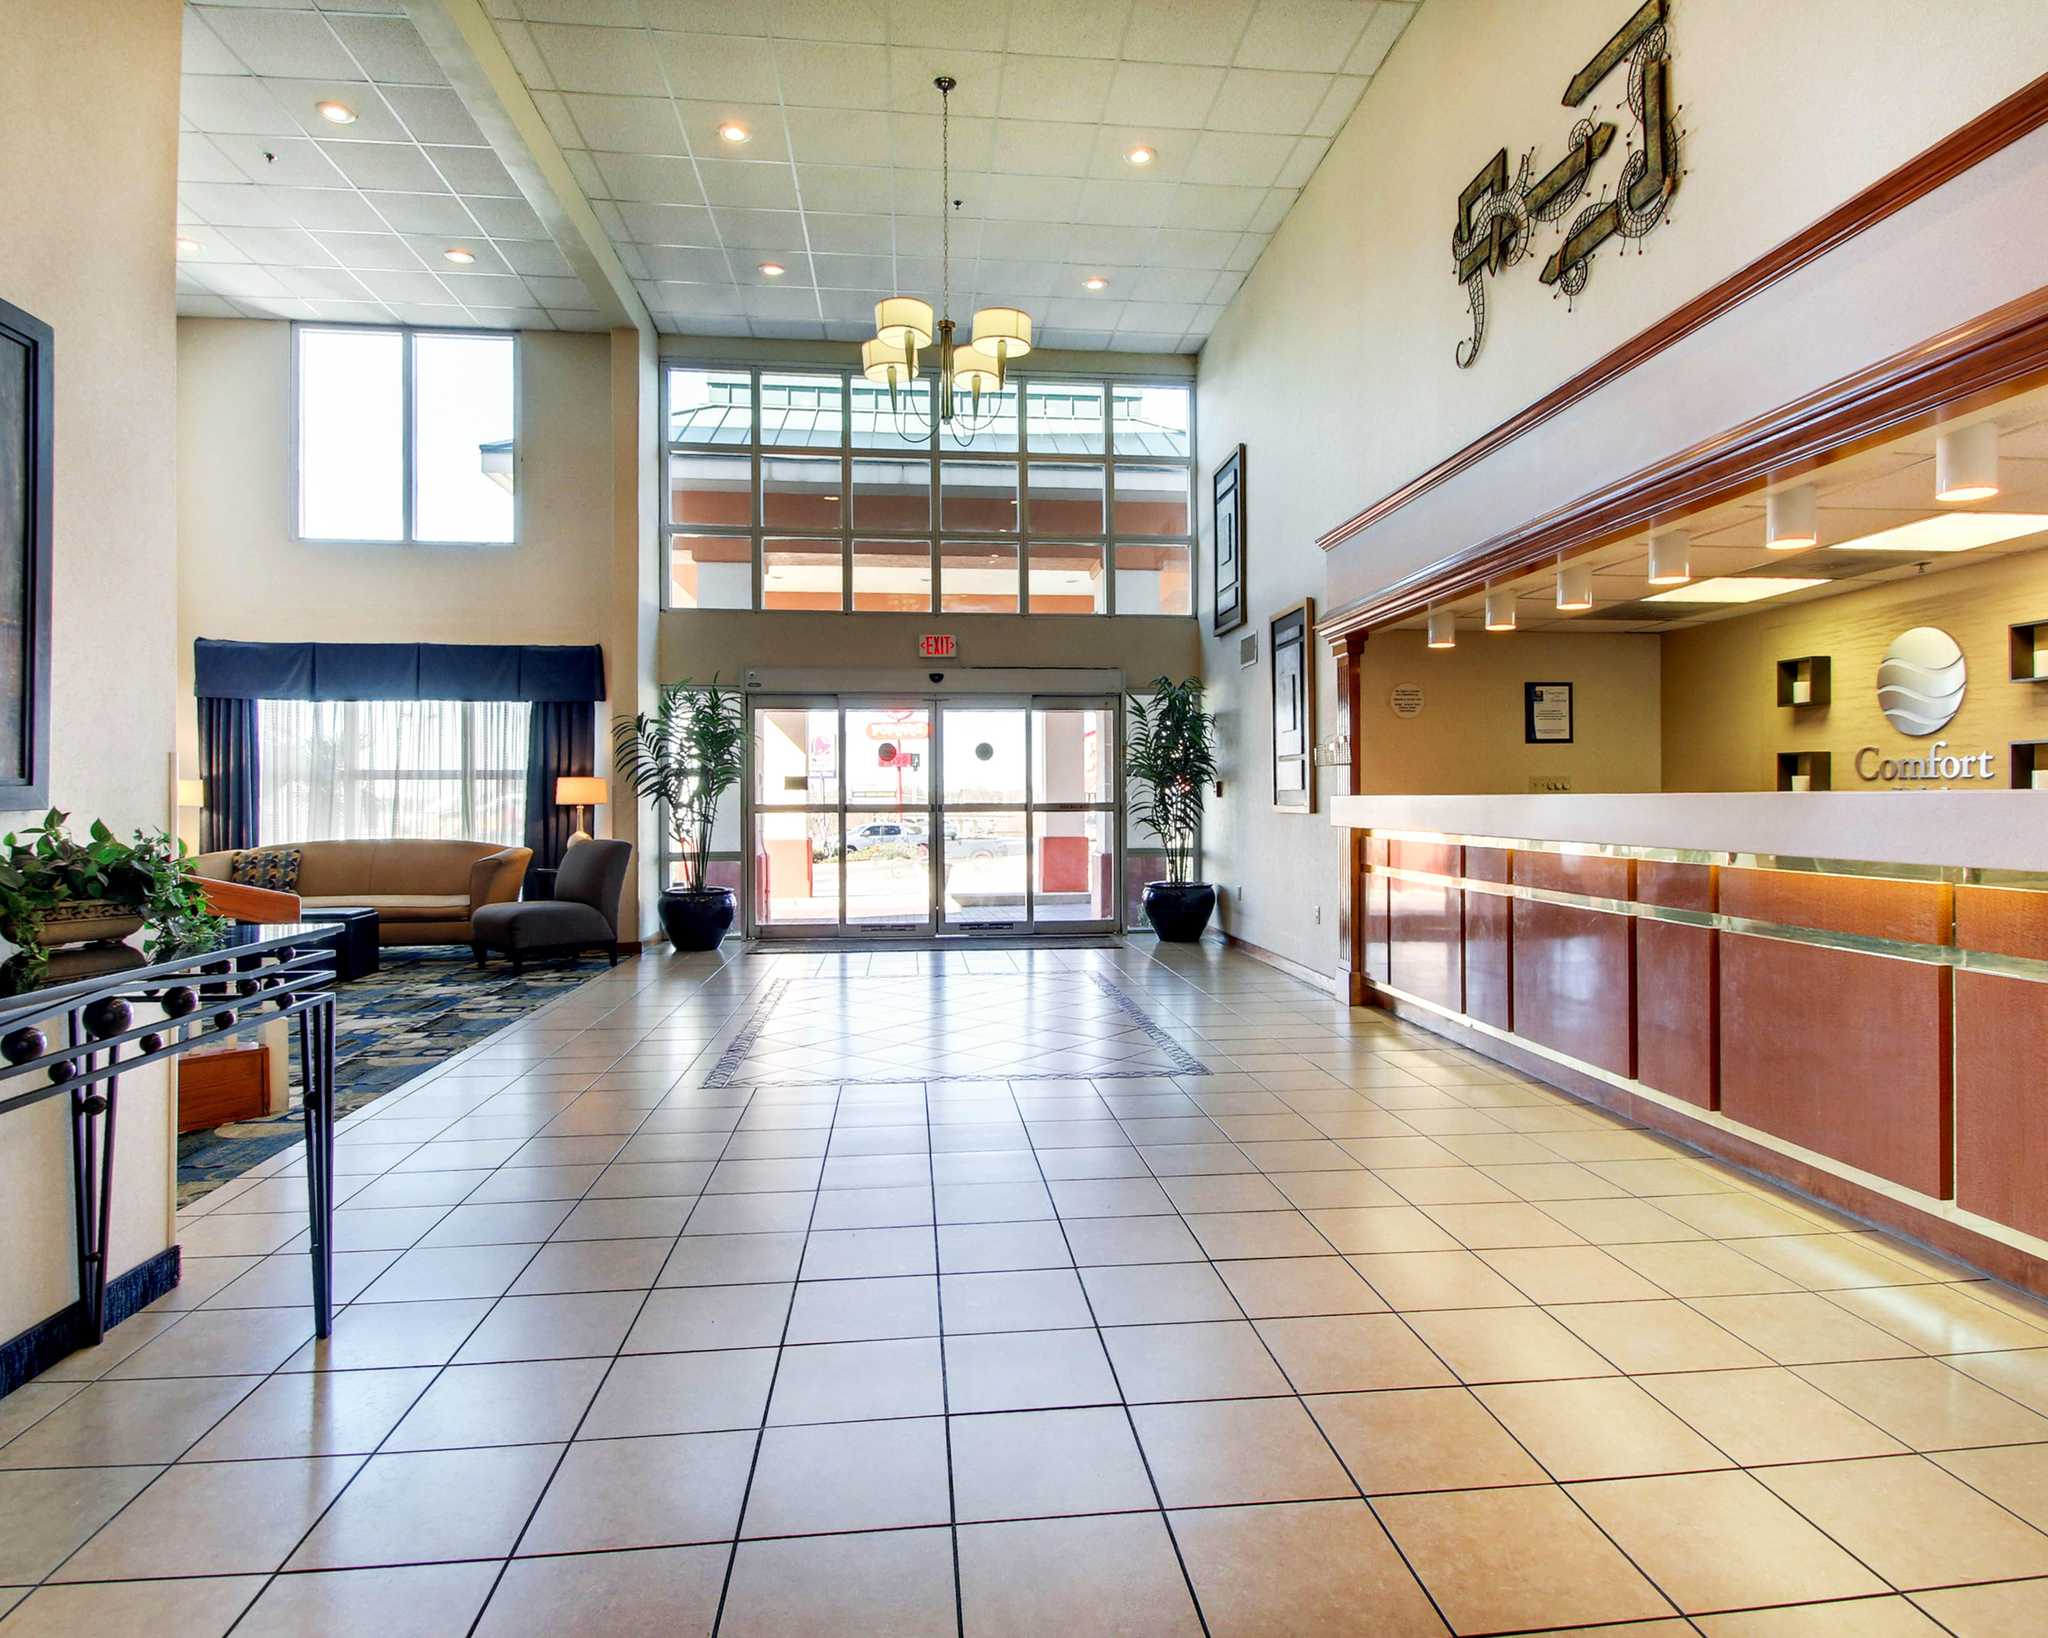 Comfort inn coupons meridian ms near me 8coupons for Meridian confort